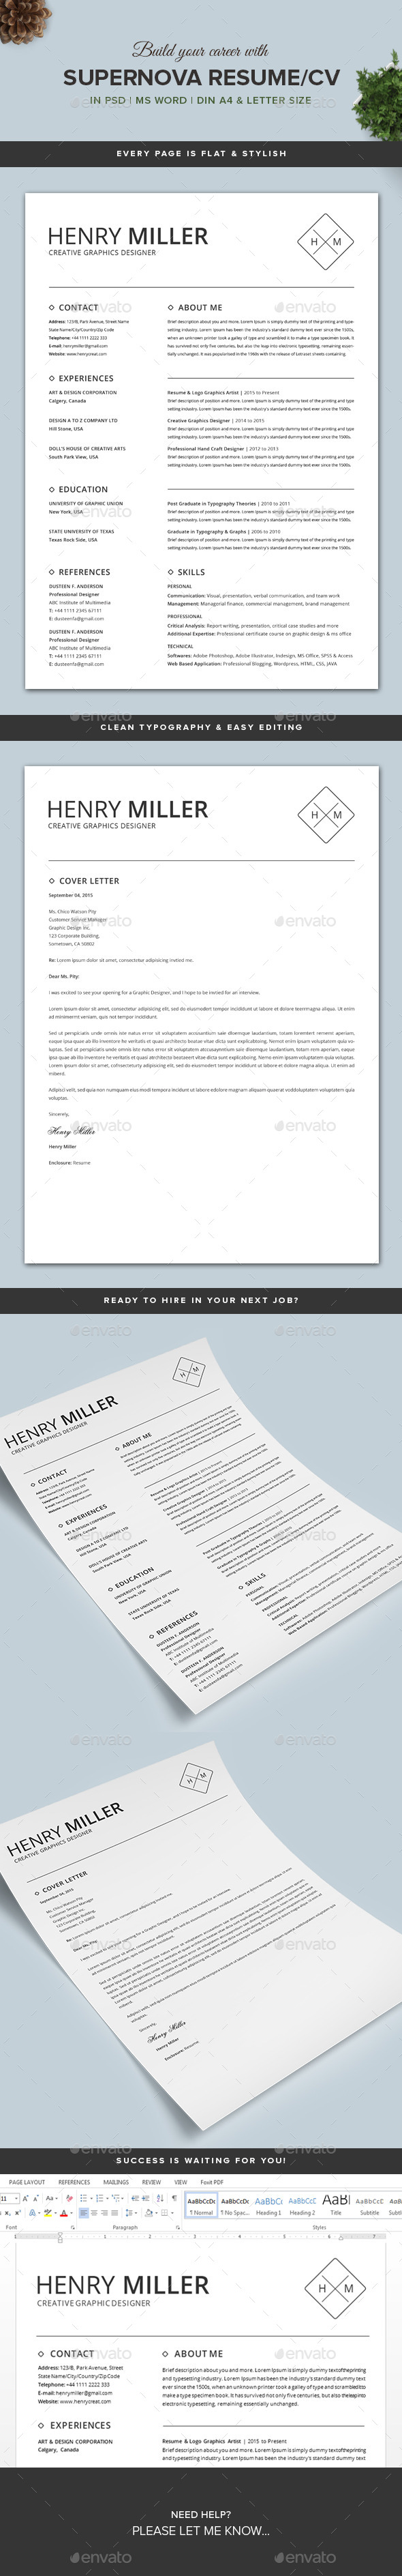 GraphicRiver Supernova Resume CV Set 11108340